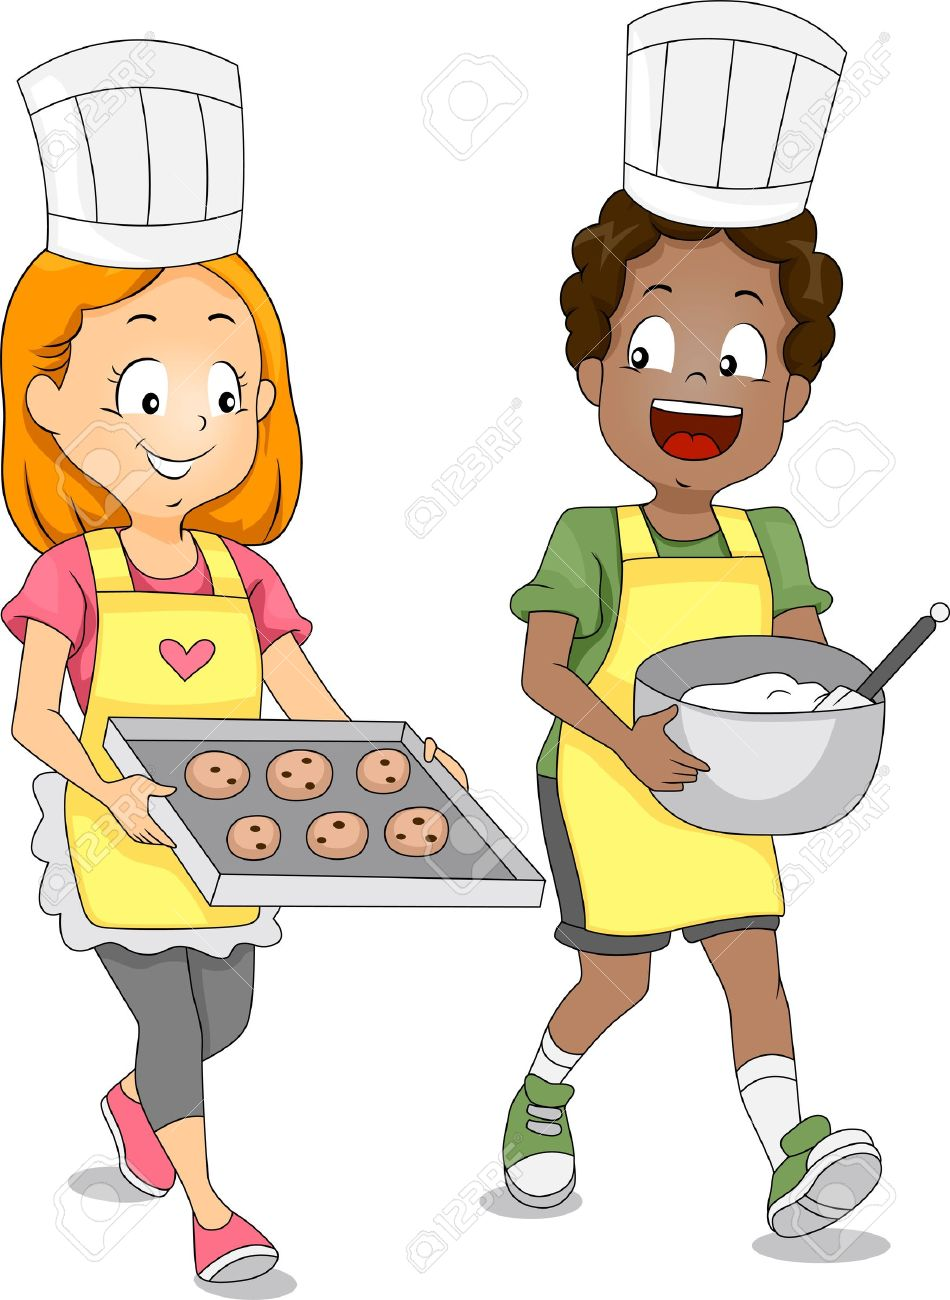 illustration of kids baking cookies stock photo picture and royalty rh 123rf com kids cooking clip art free kids cooking clip art free